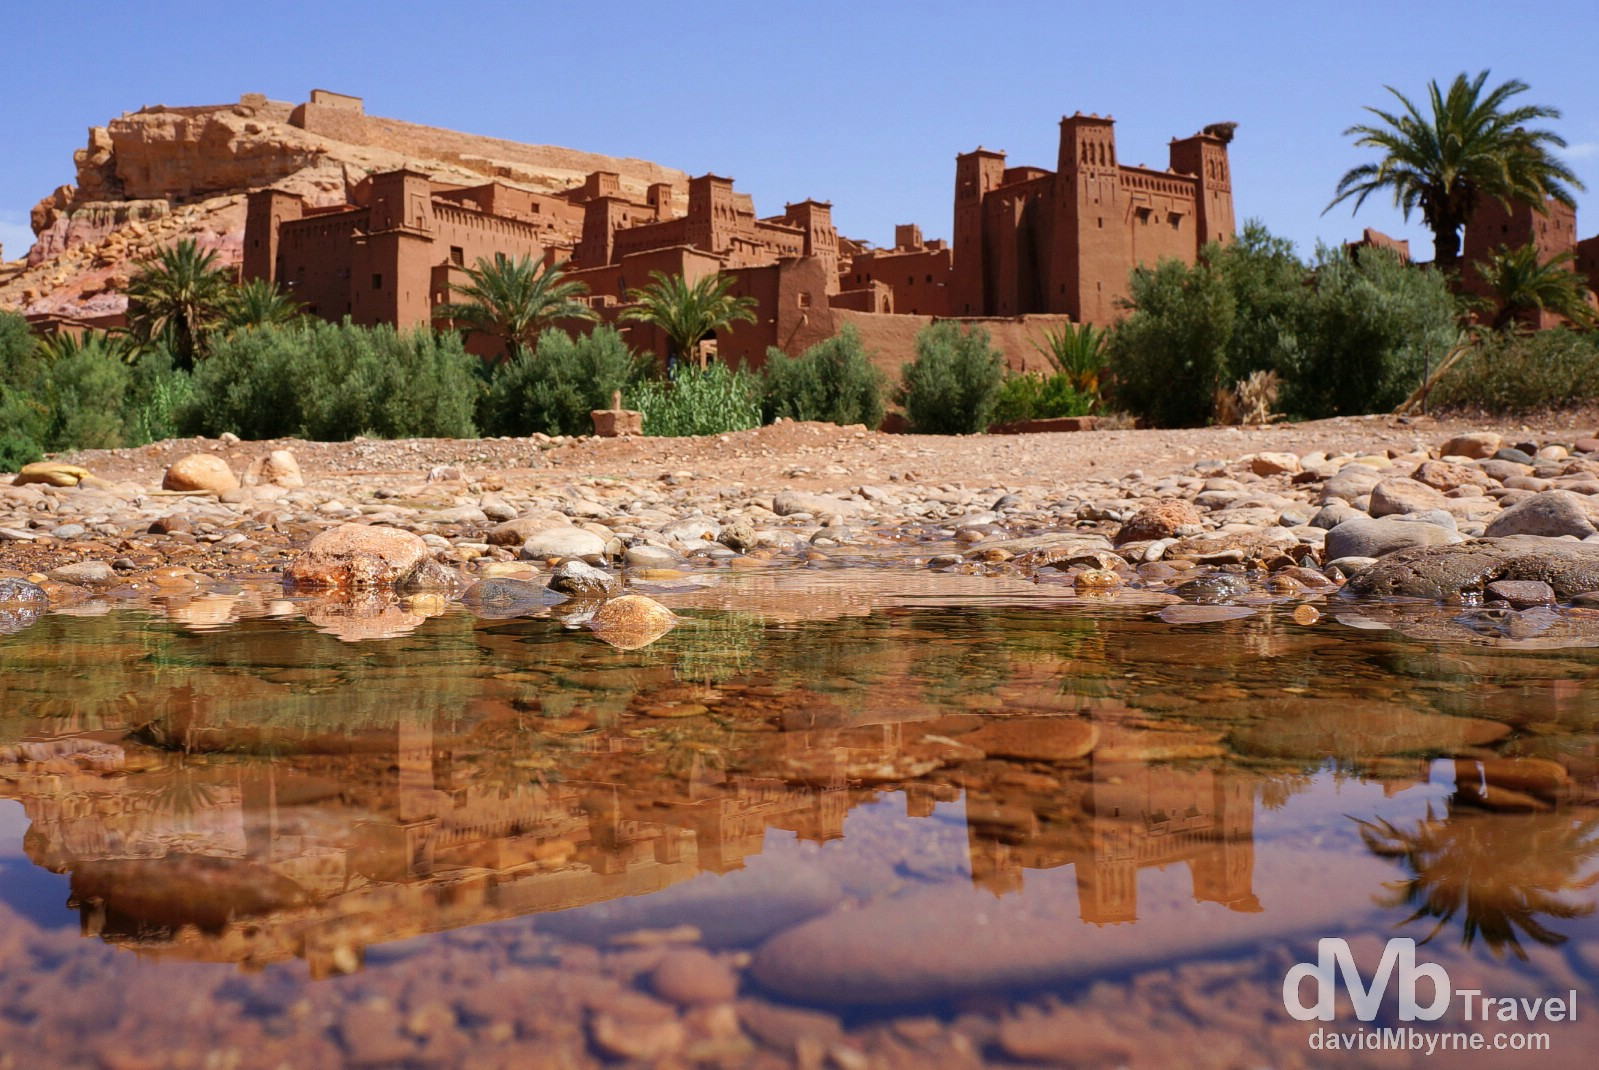 UNESCO-listed Ait Benhaddou in southern Morocco. May 14th, 2014.